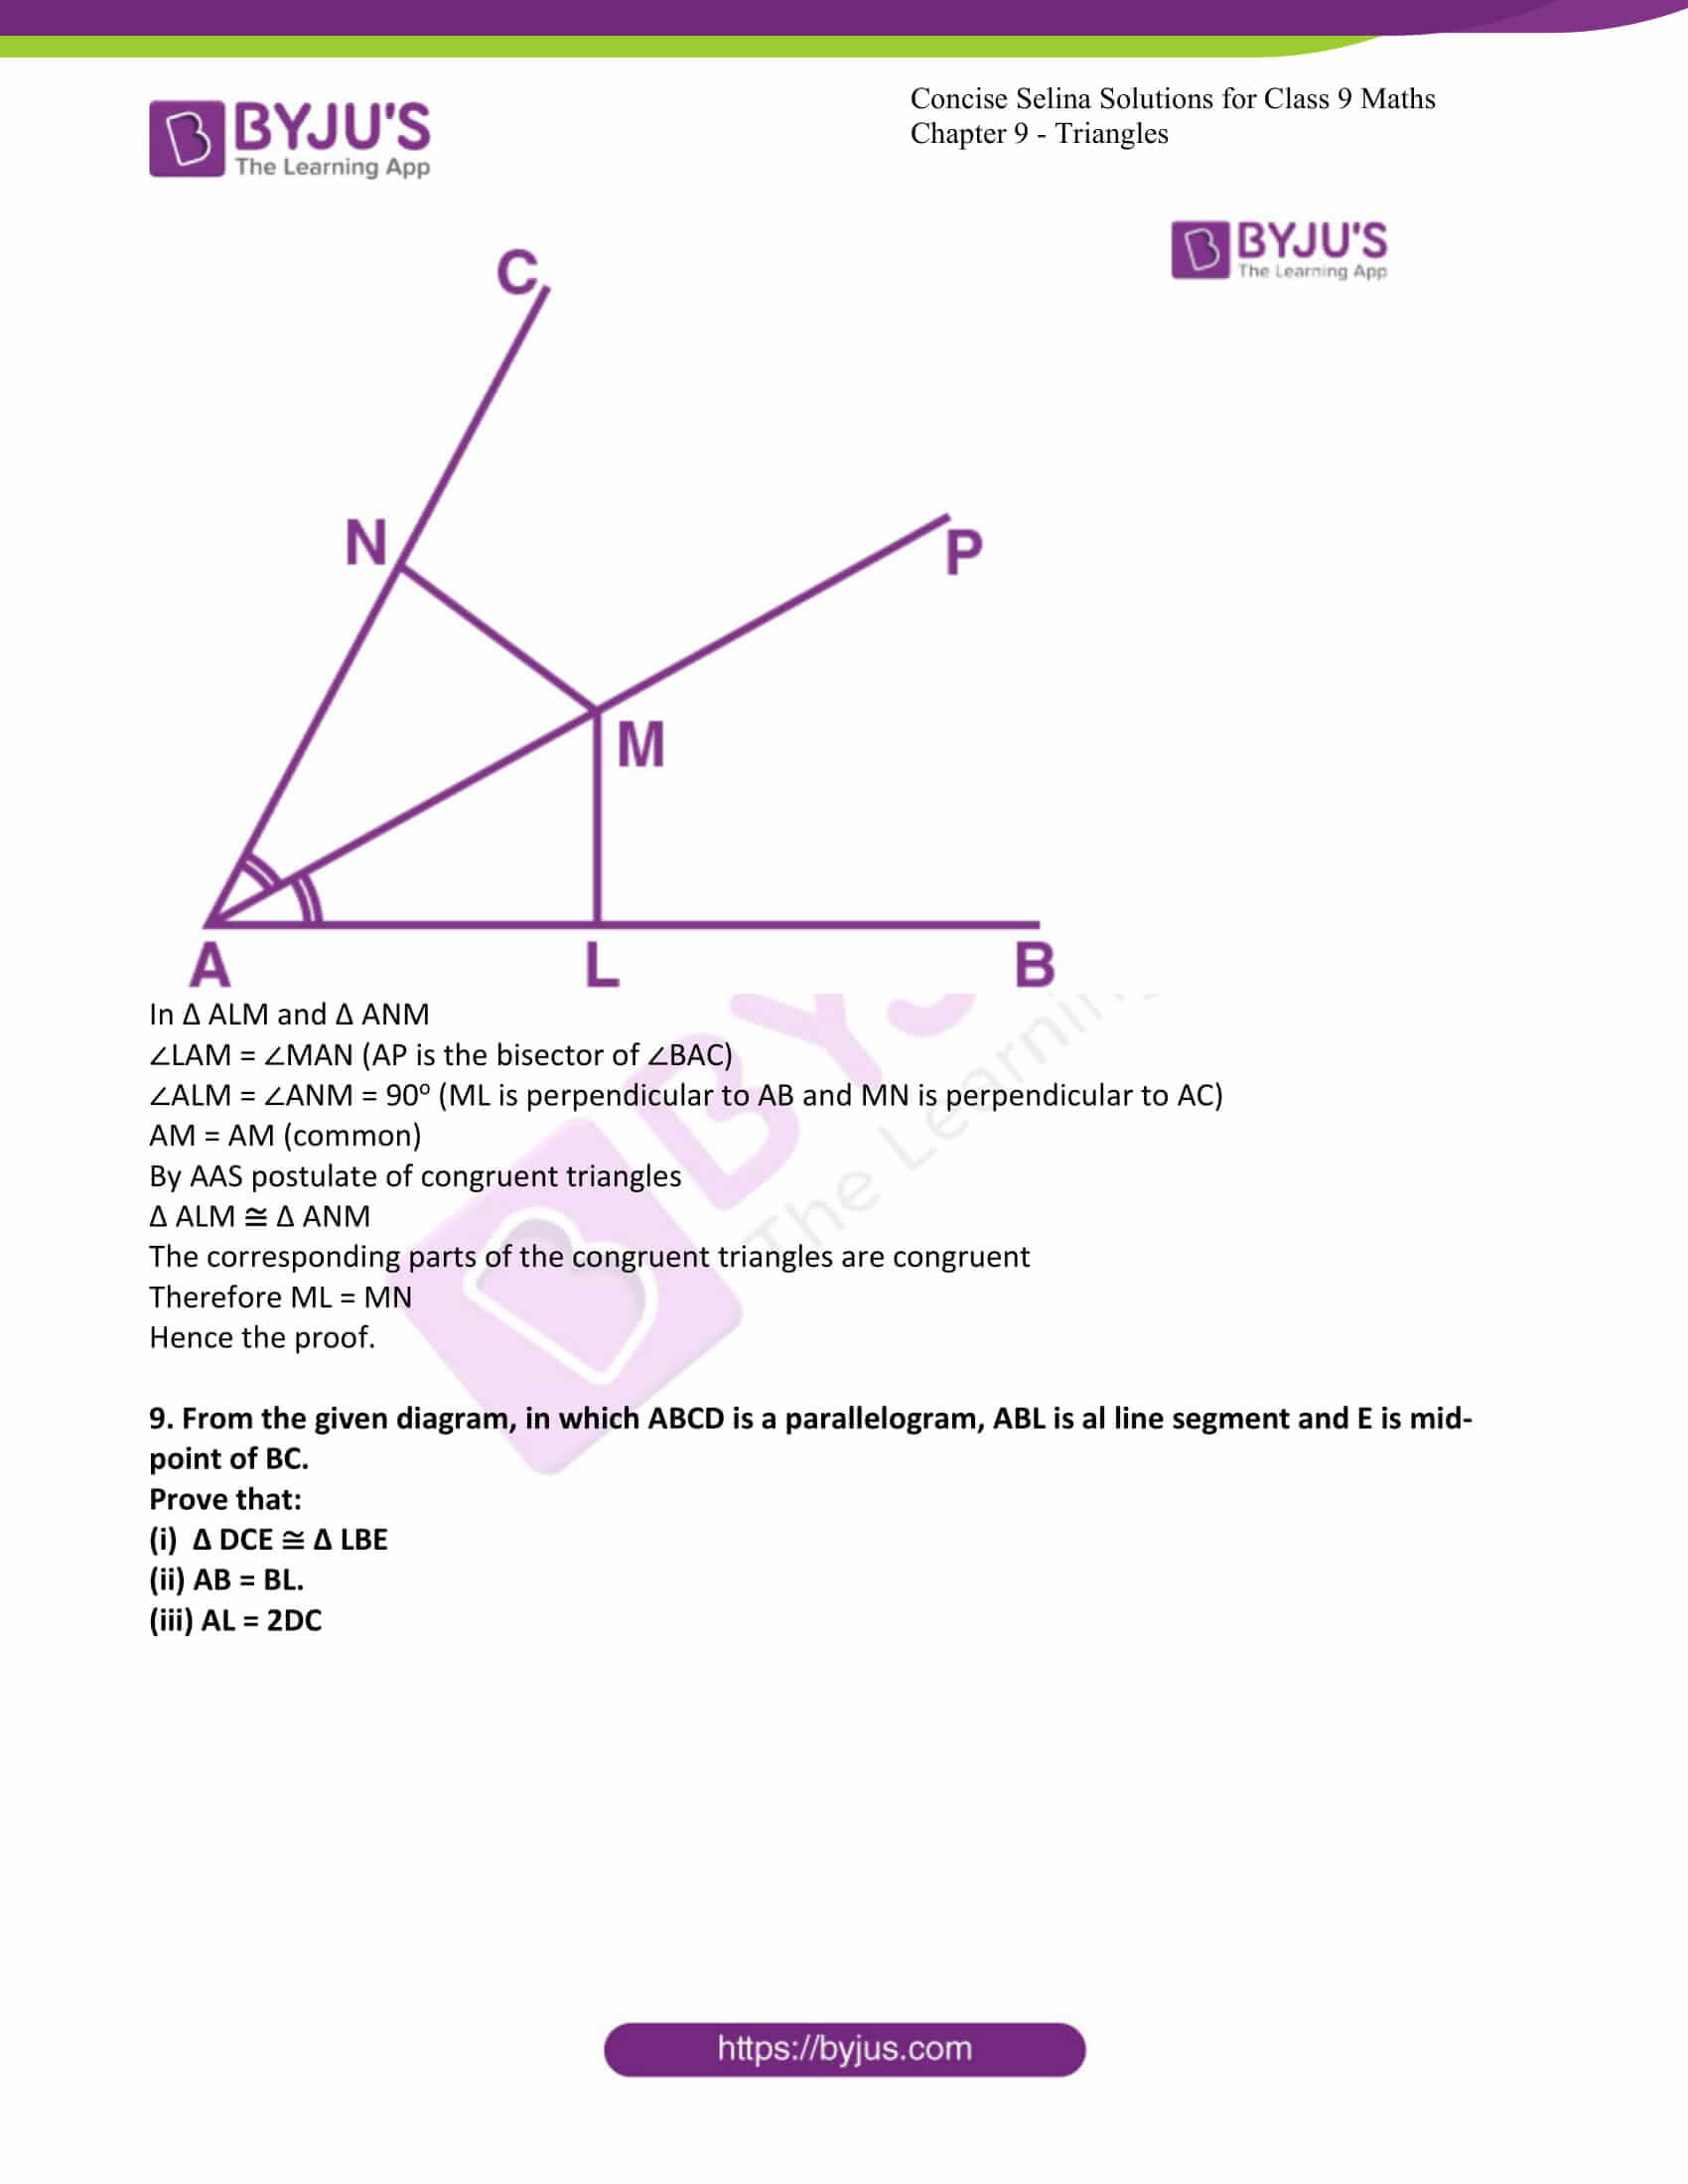 icse class 9 maths may10 selina solutions chapter 9 triangles 13